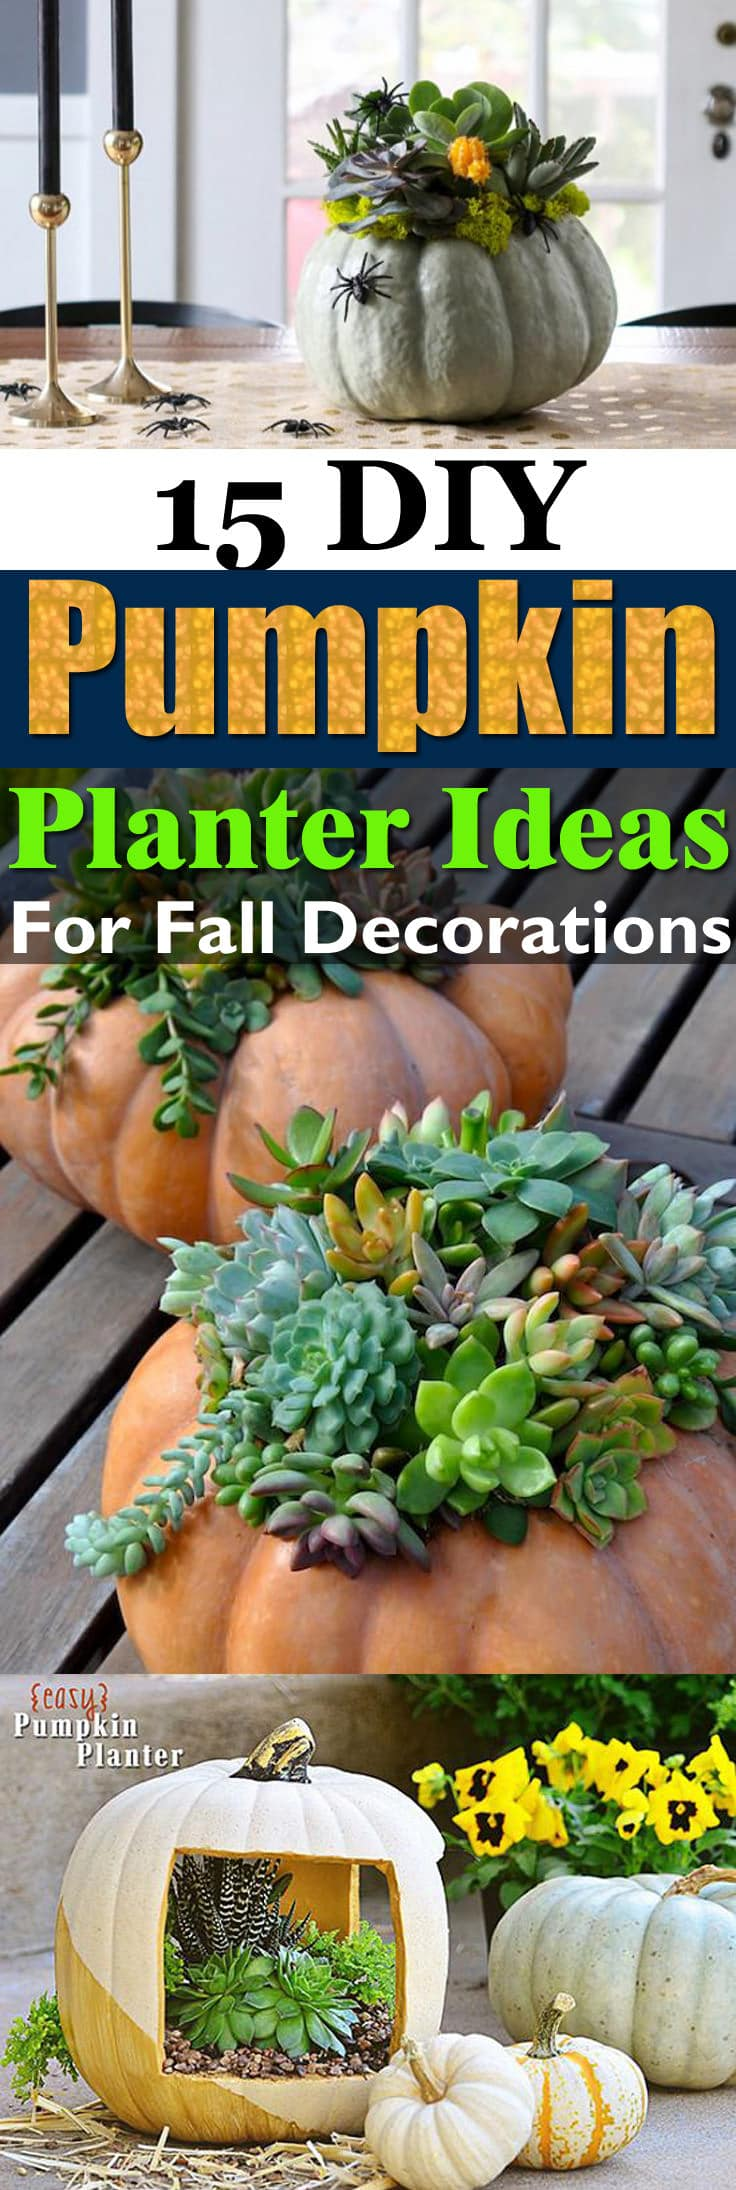 Carve Pumpkins Or Else Use The Plastic Ones For These 15 Amazing DIY Pumpkin Planter Ideas